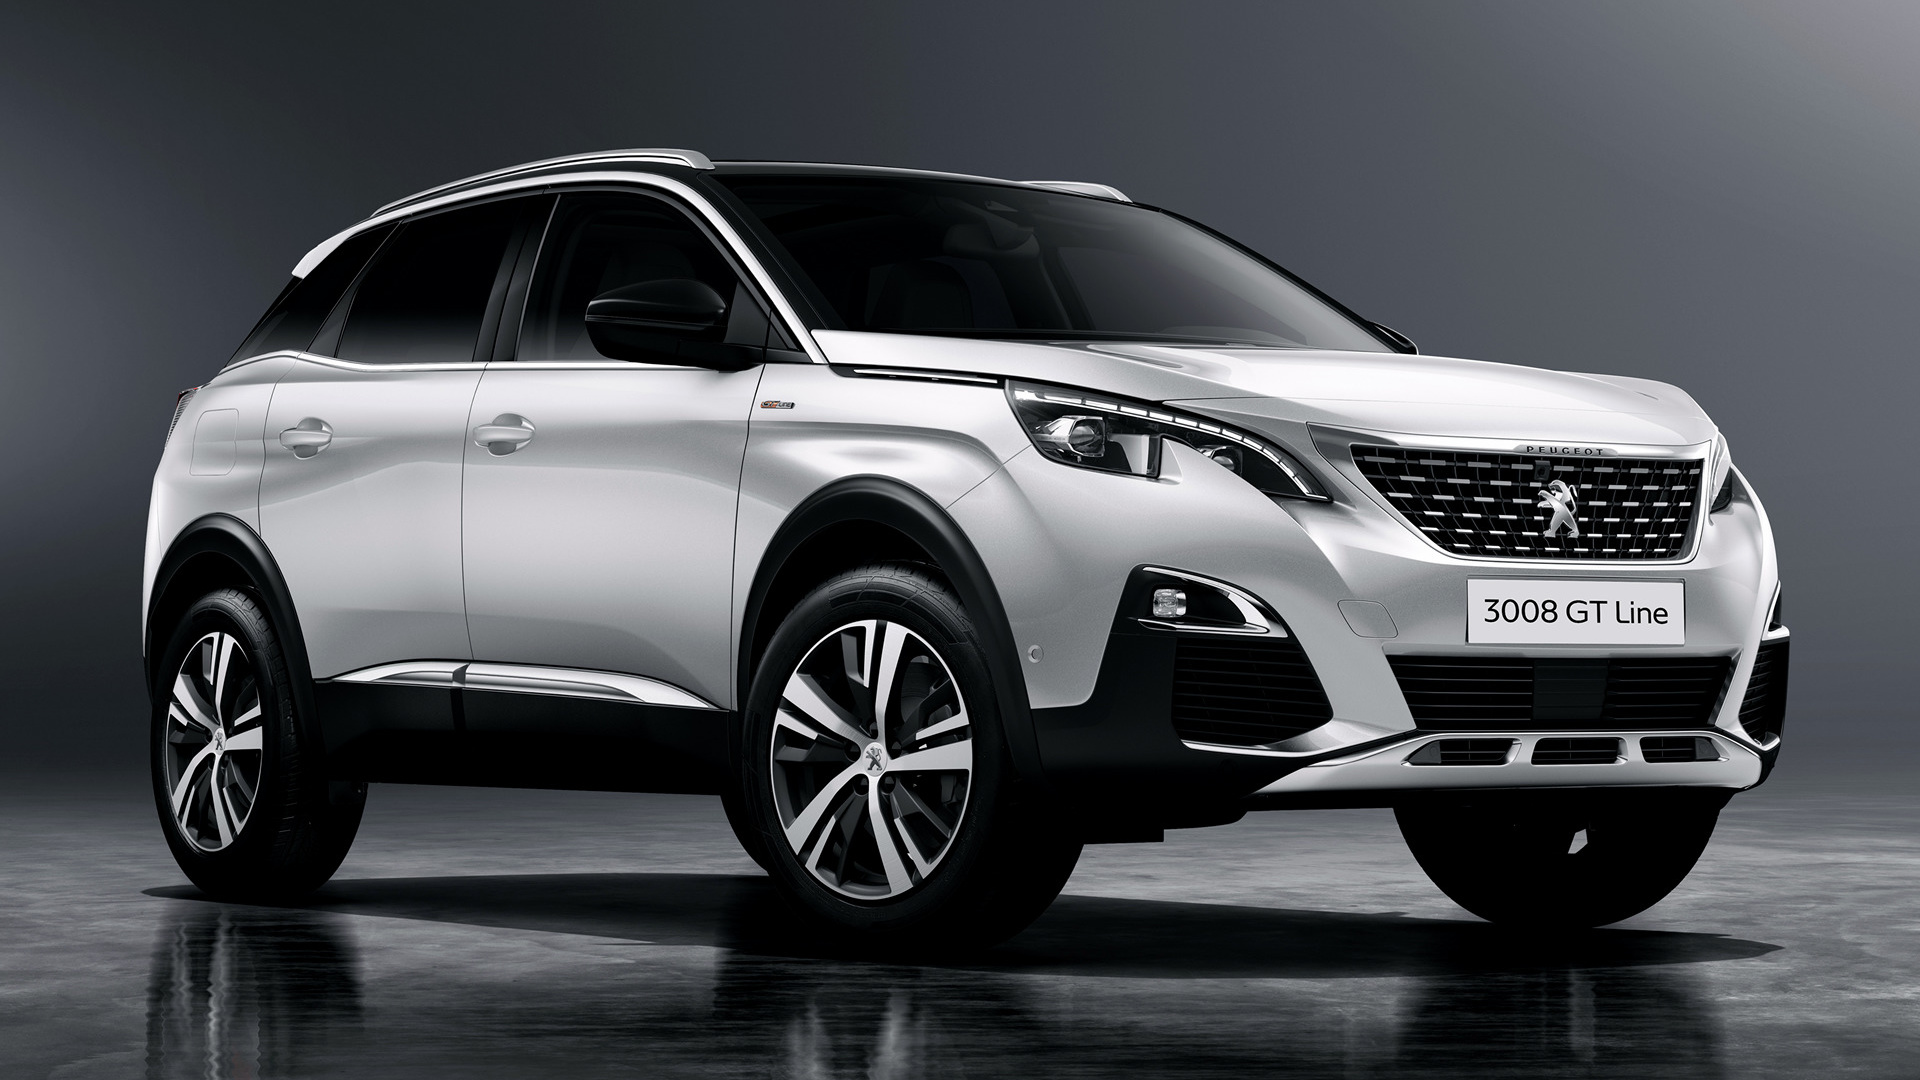 2016 Peugeot 3008 Gt Line Wallpapers And Hd Images Car